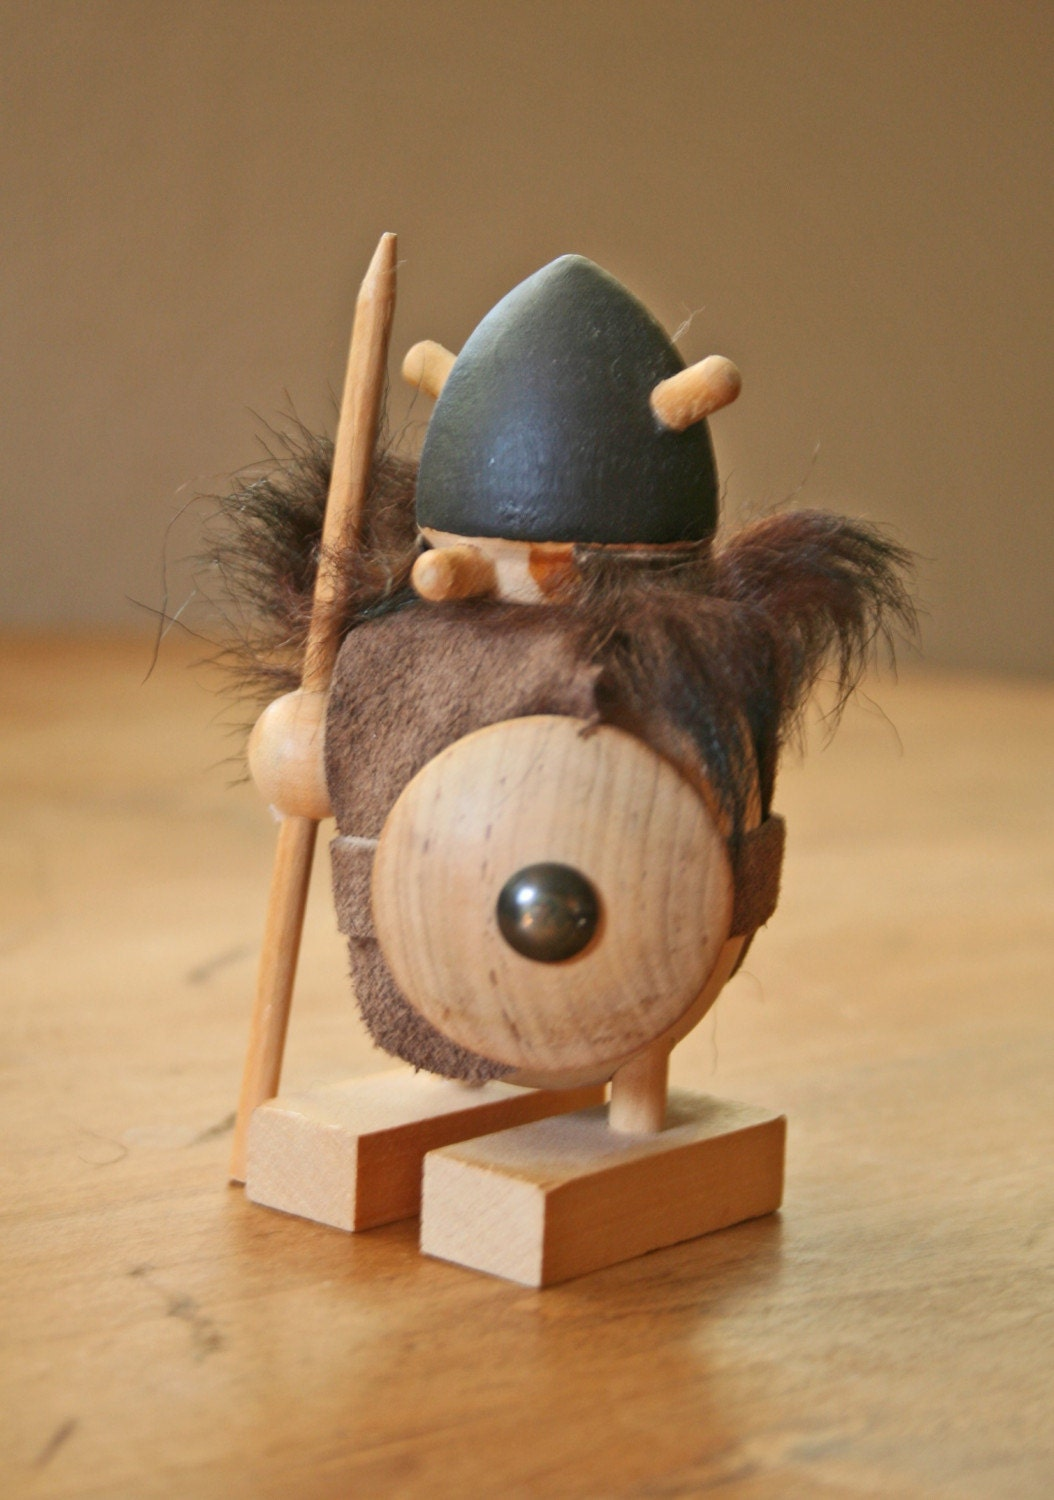 Wooden Viking Figure By Modishvintage On Etsy